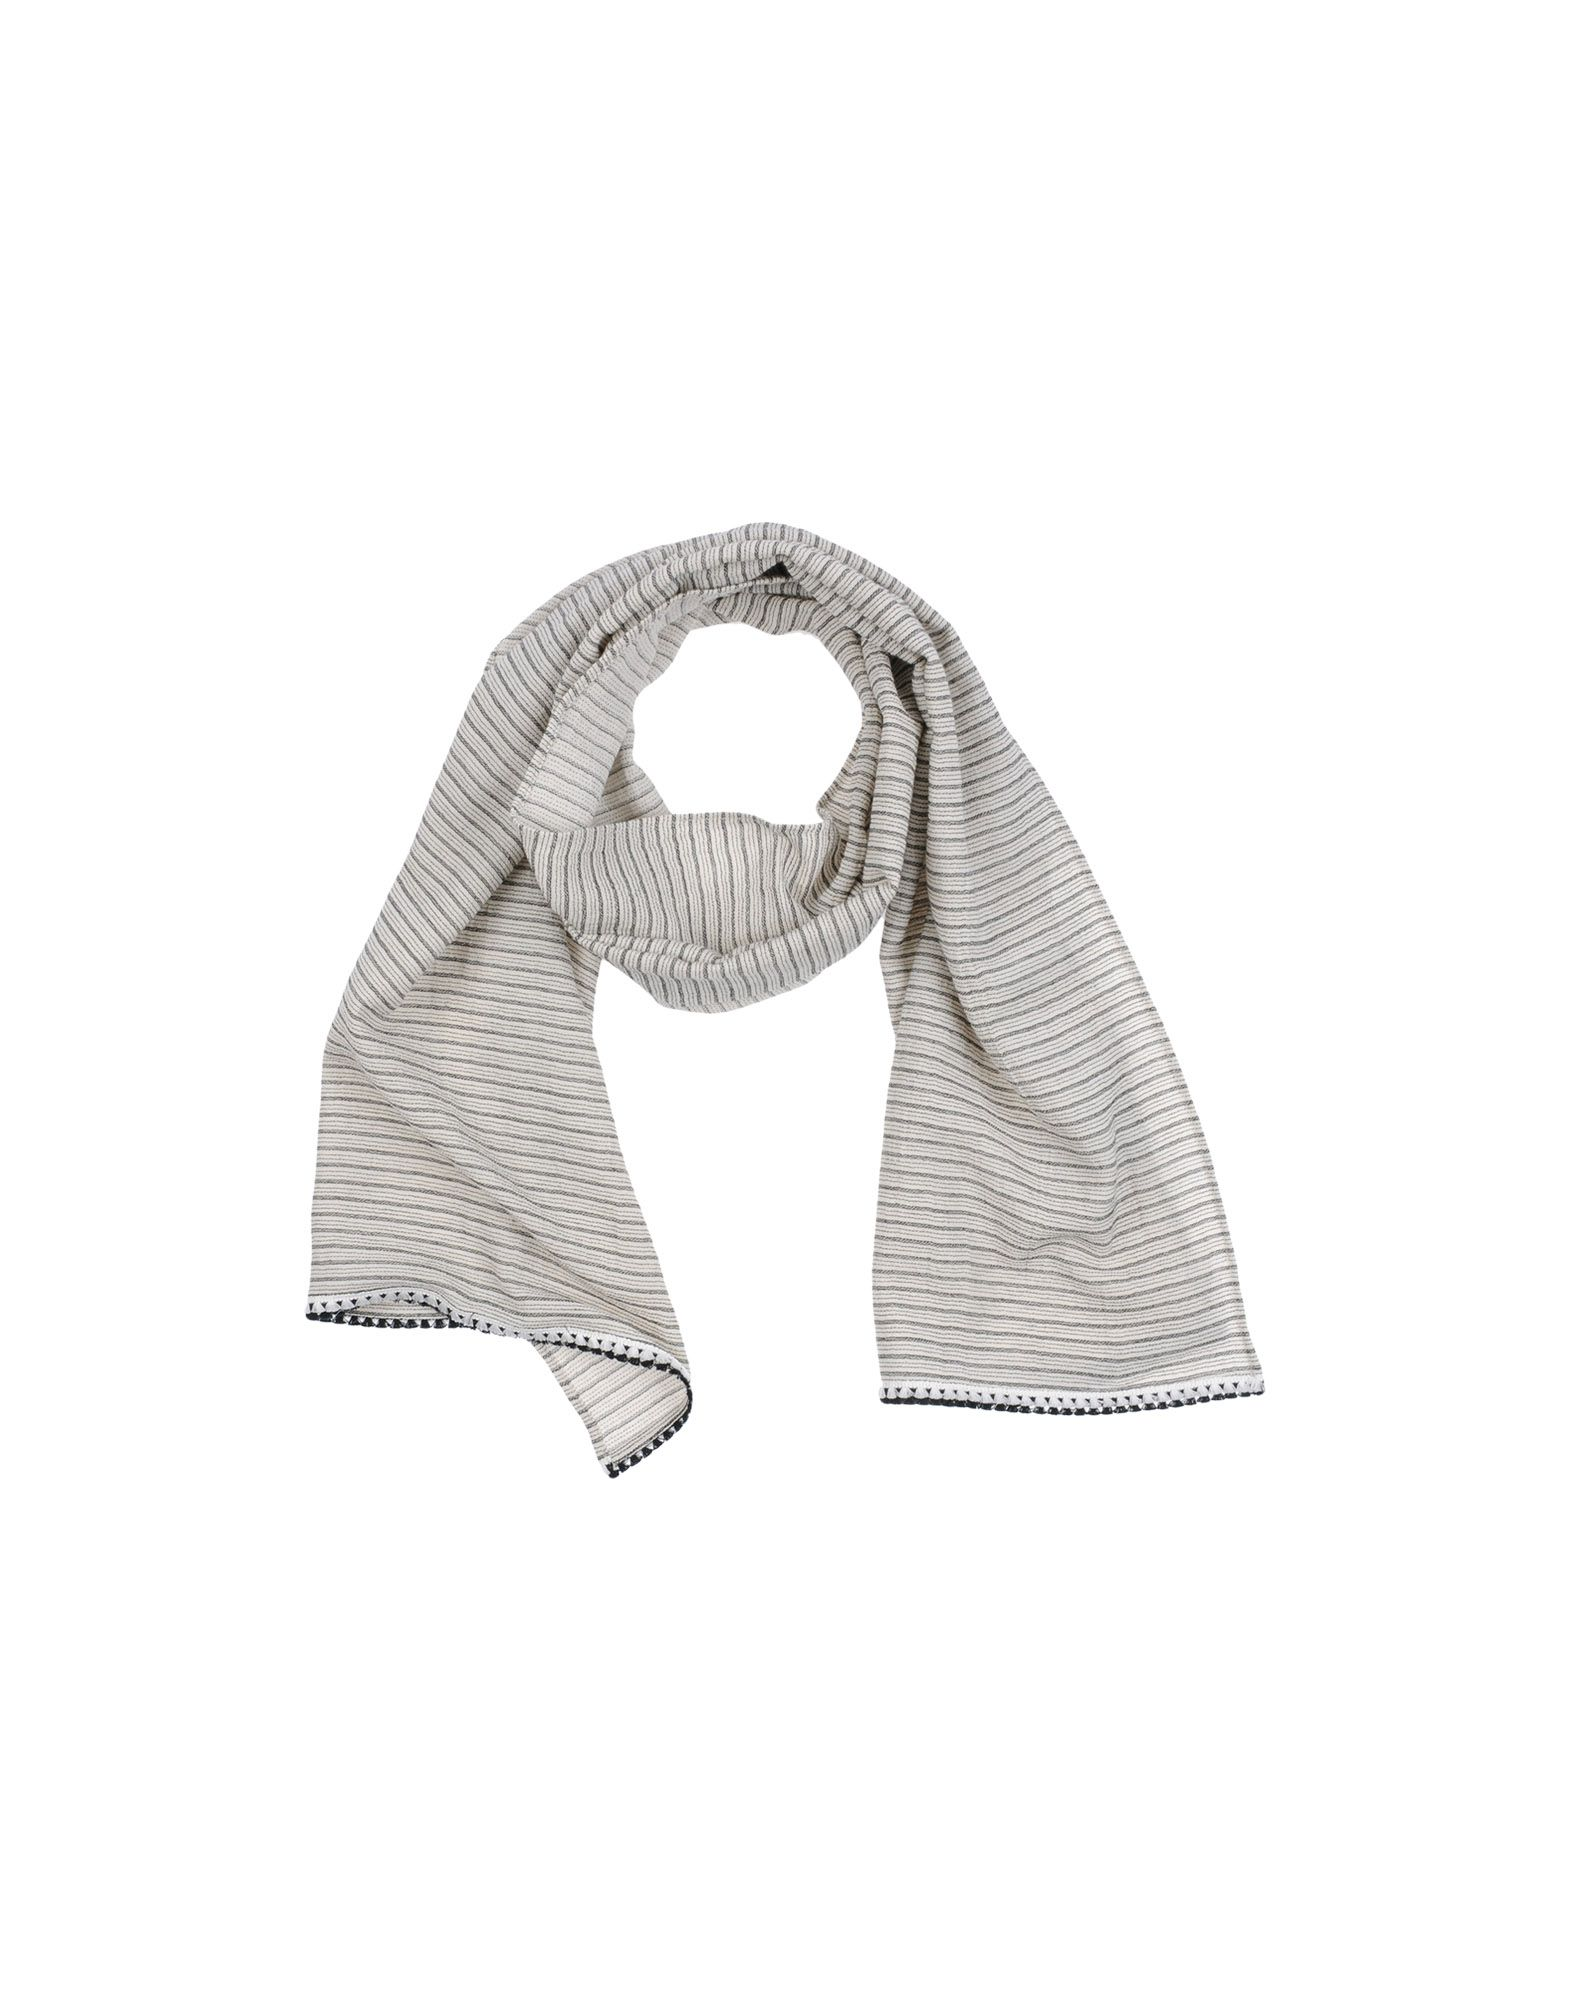 SESSUN Scarves in Ivory